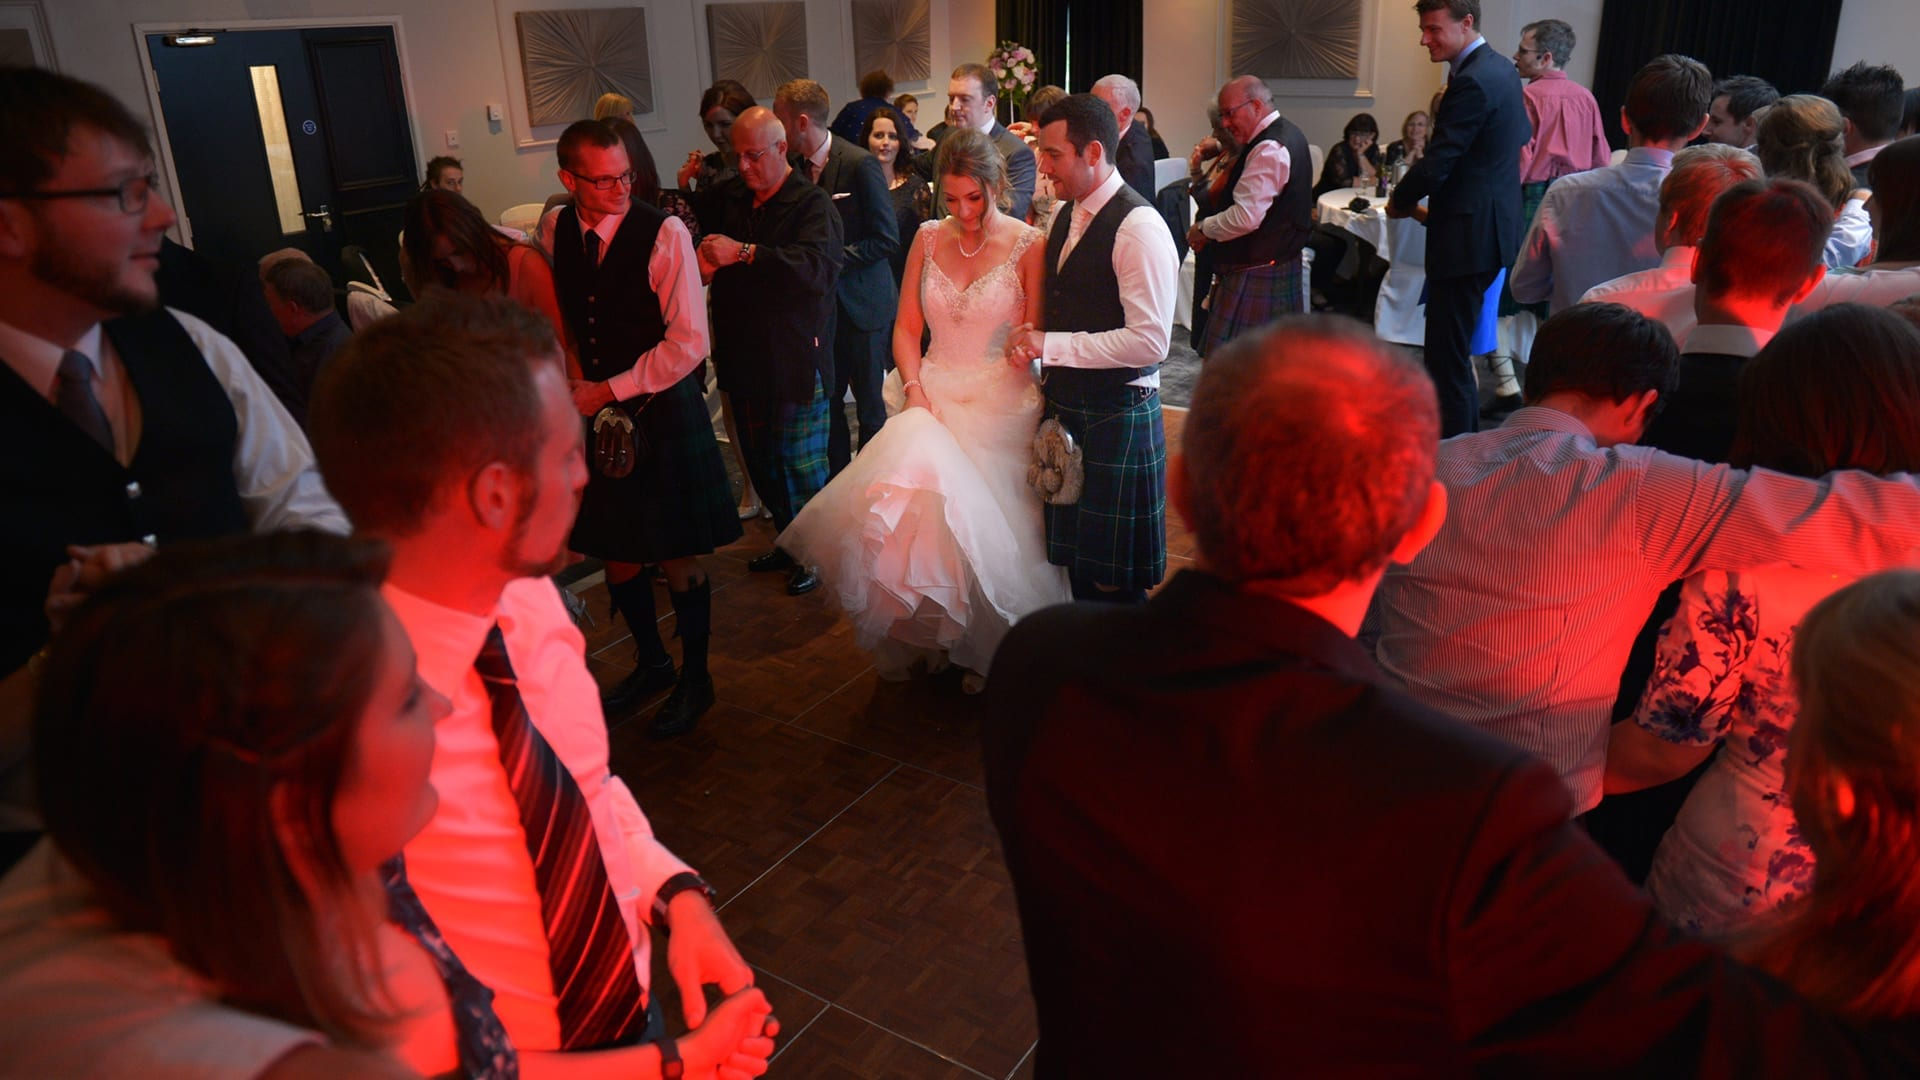 Ceilidh dancing at Barony Castle